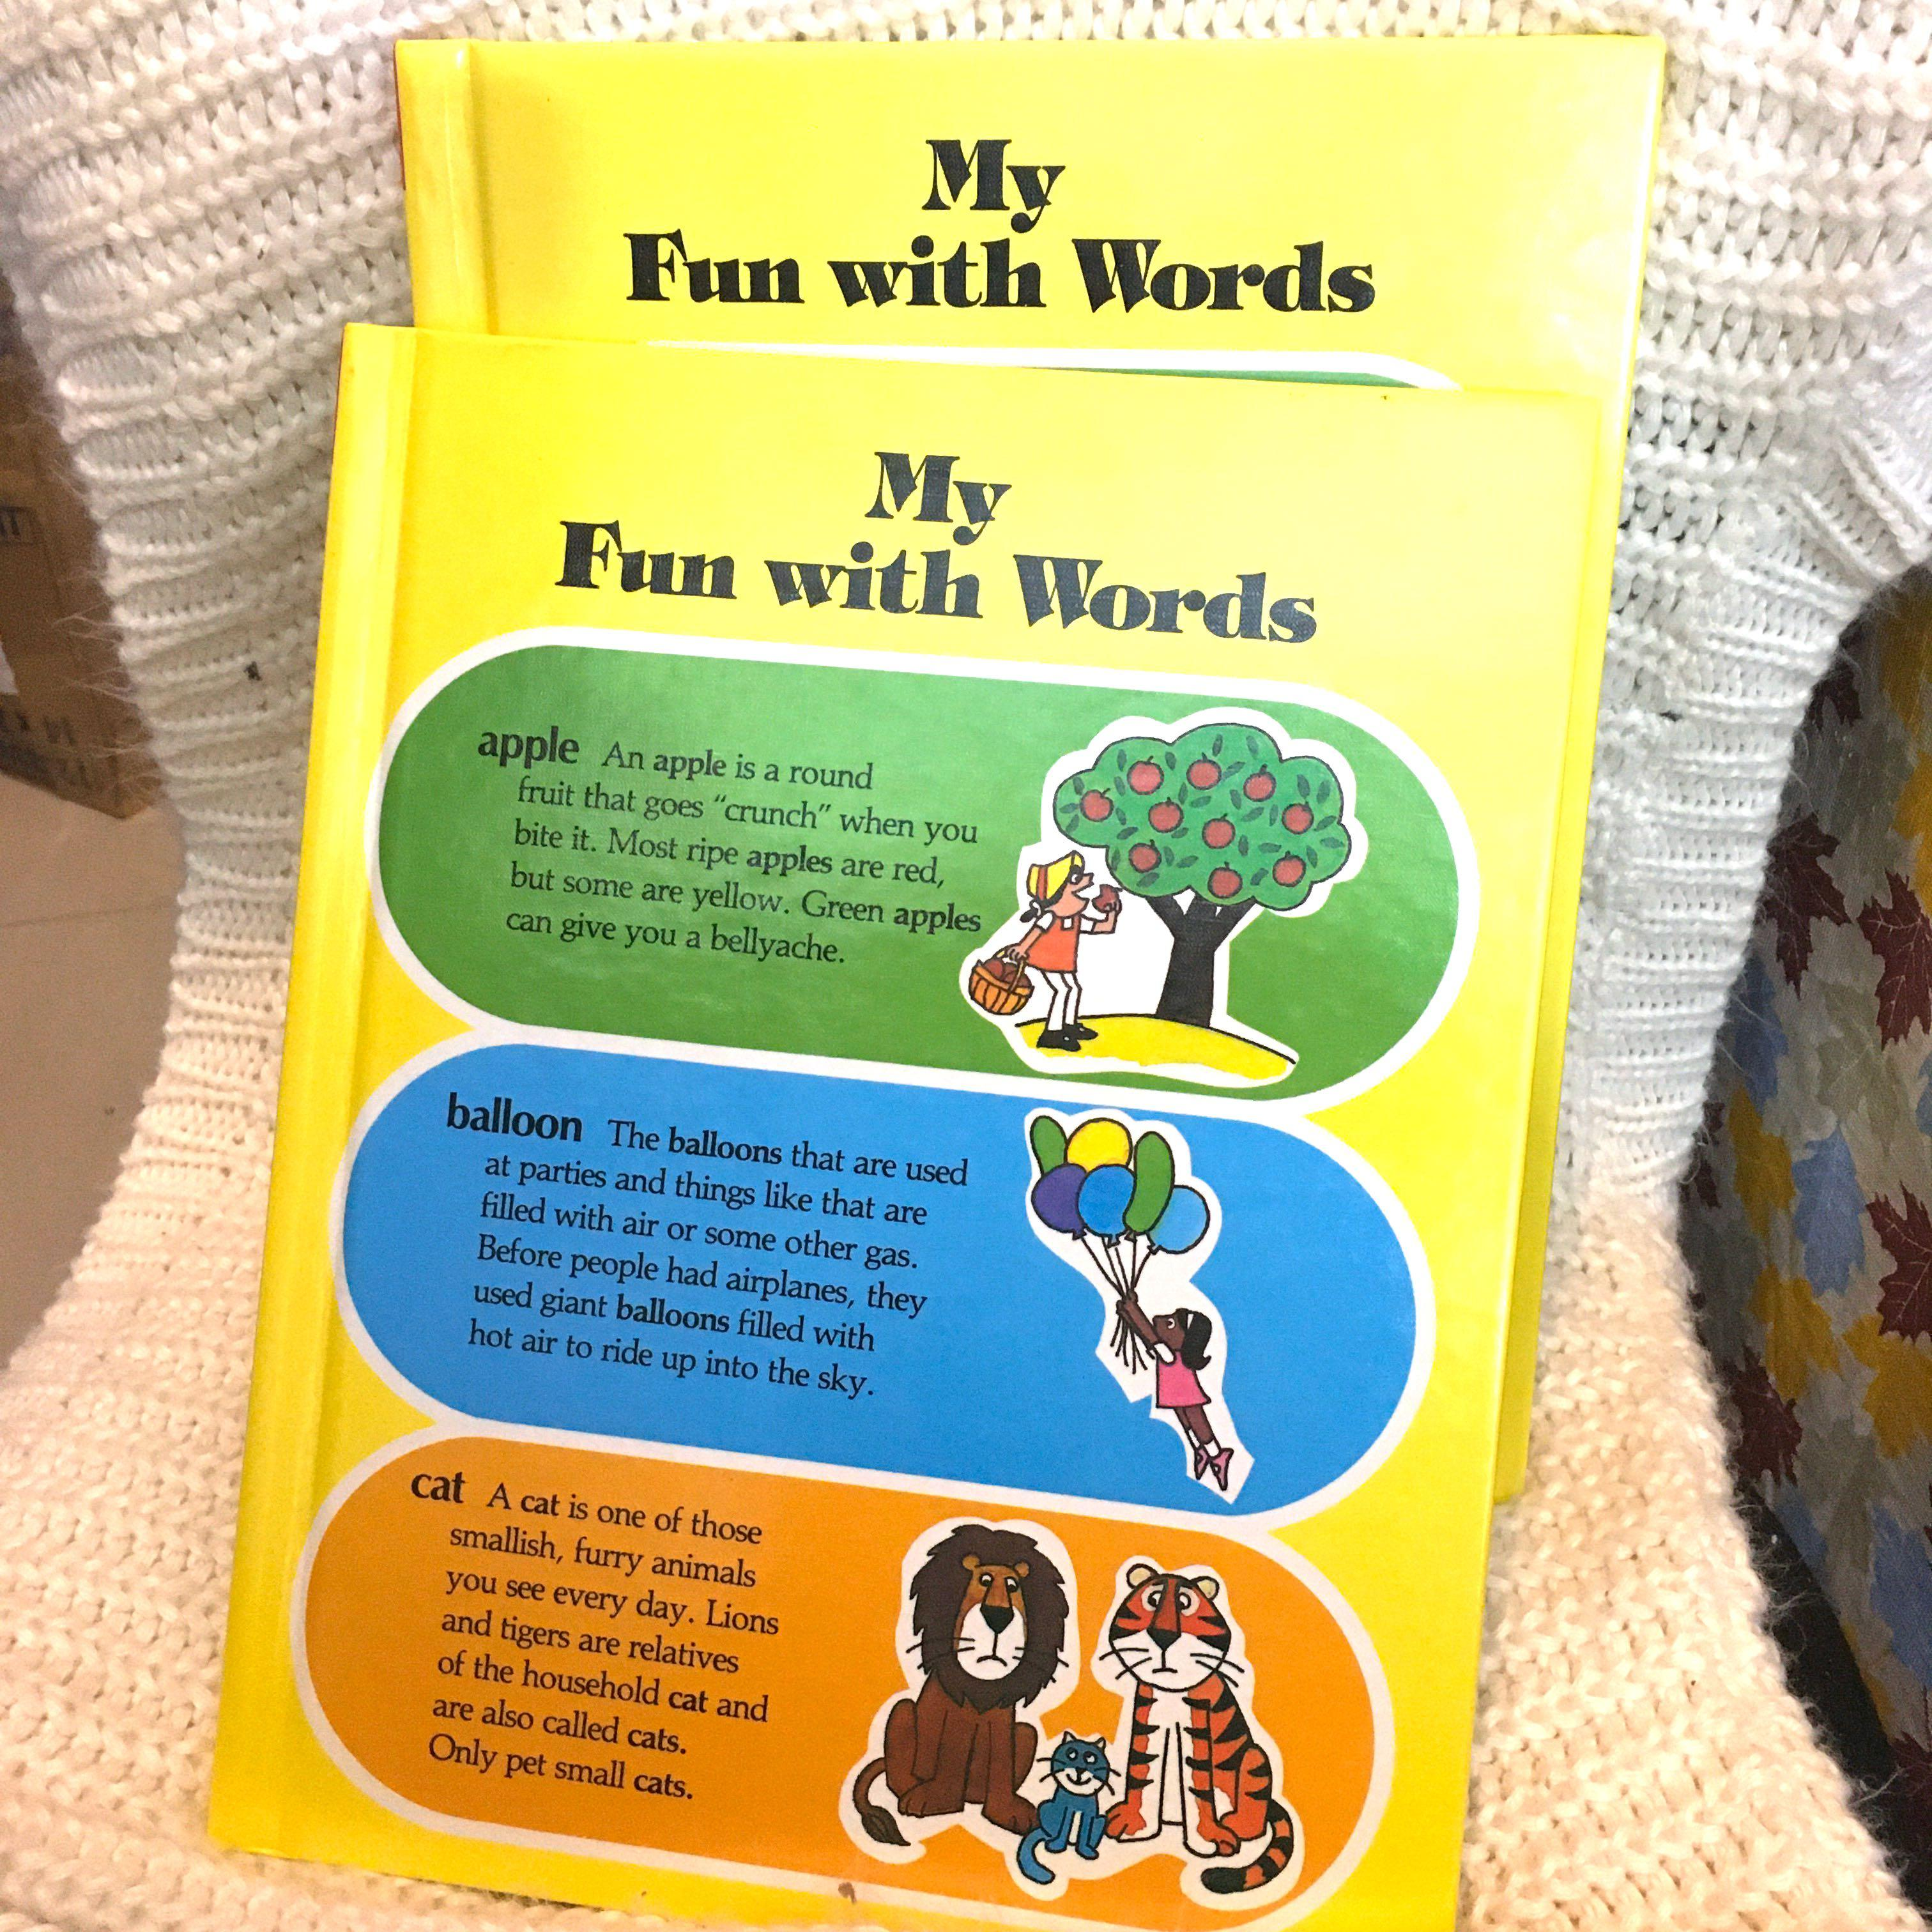 My Fun With Words A-K and L-Z Set of 2 Books Bundle Take All Educational Books